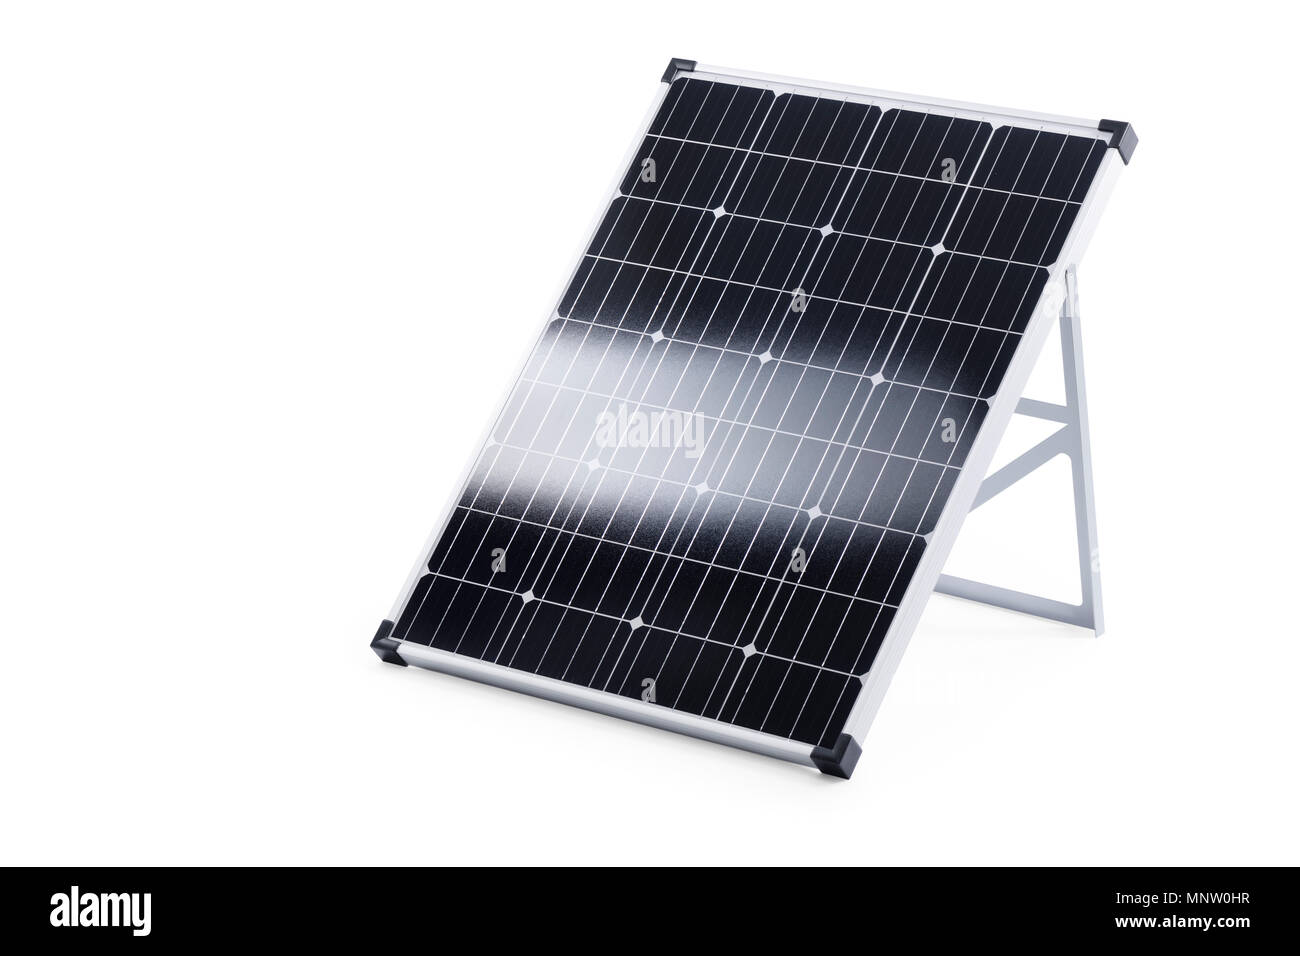 Portable 100 Watt solar panel with crystalline solar cells isolated on white background with a clipping path - Stock Image